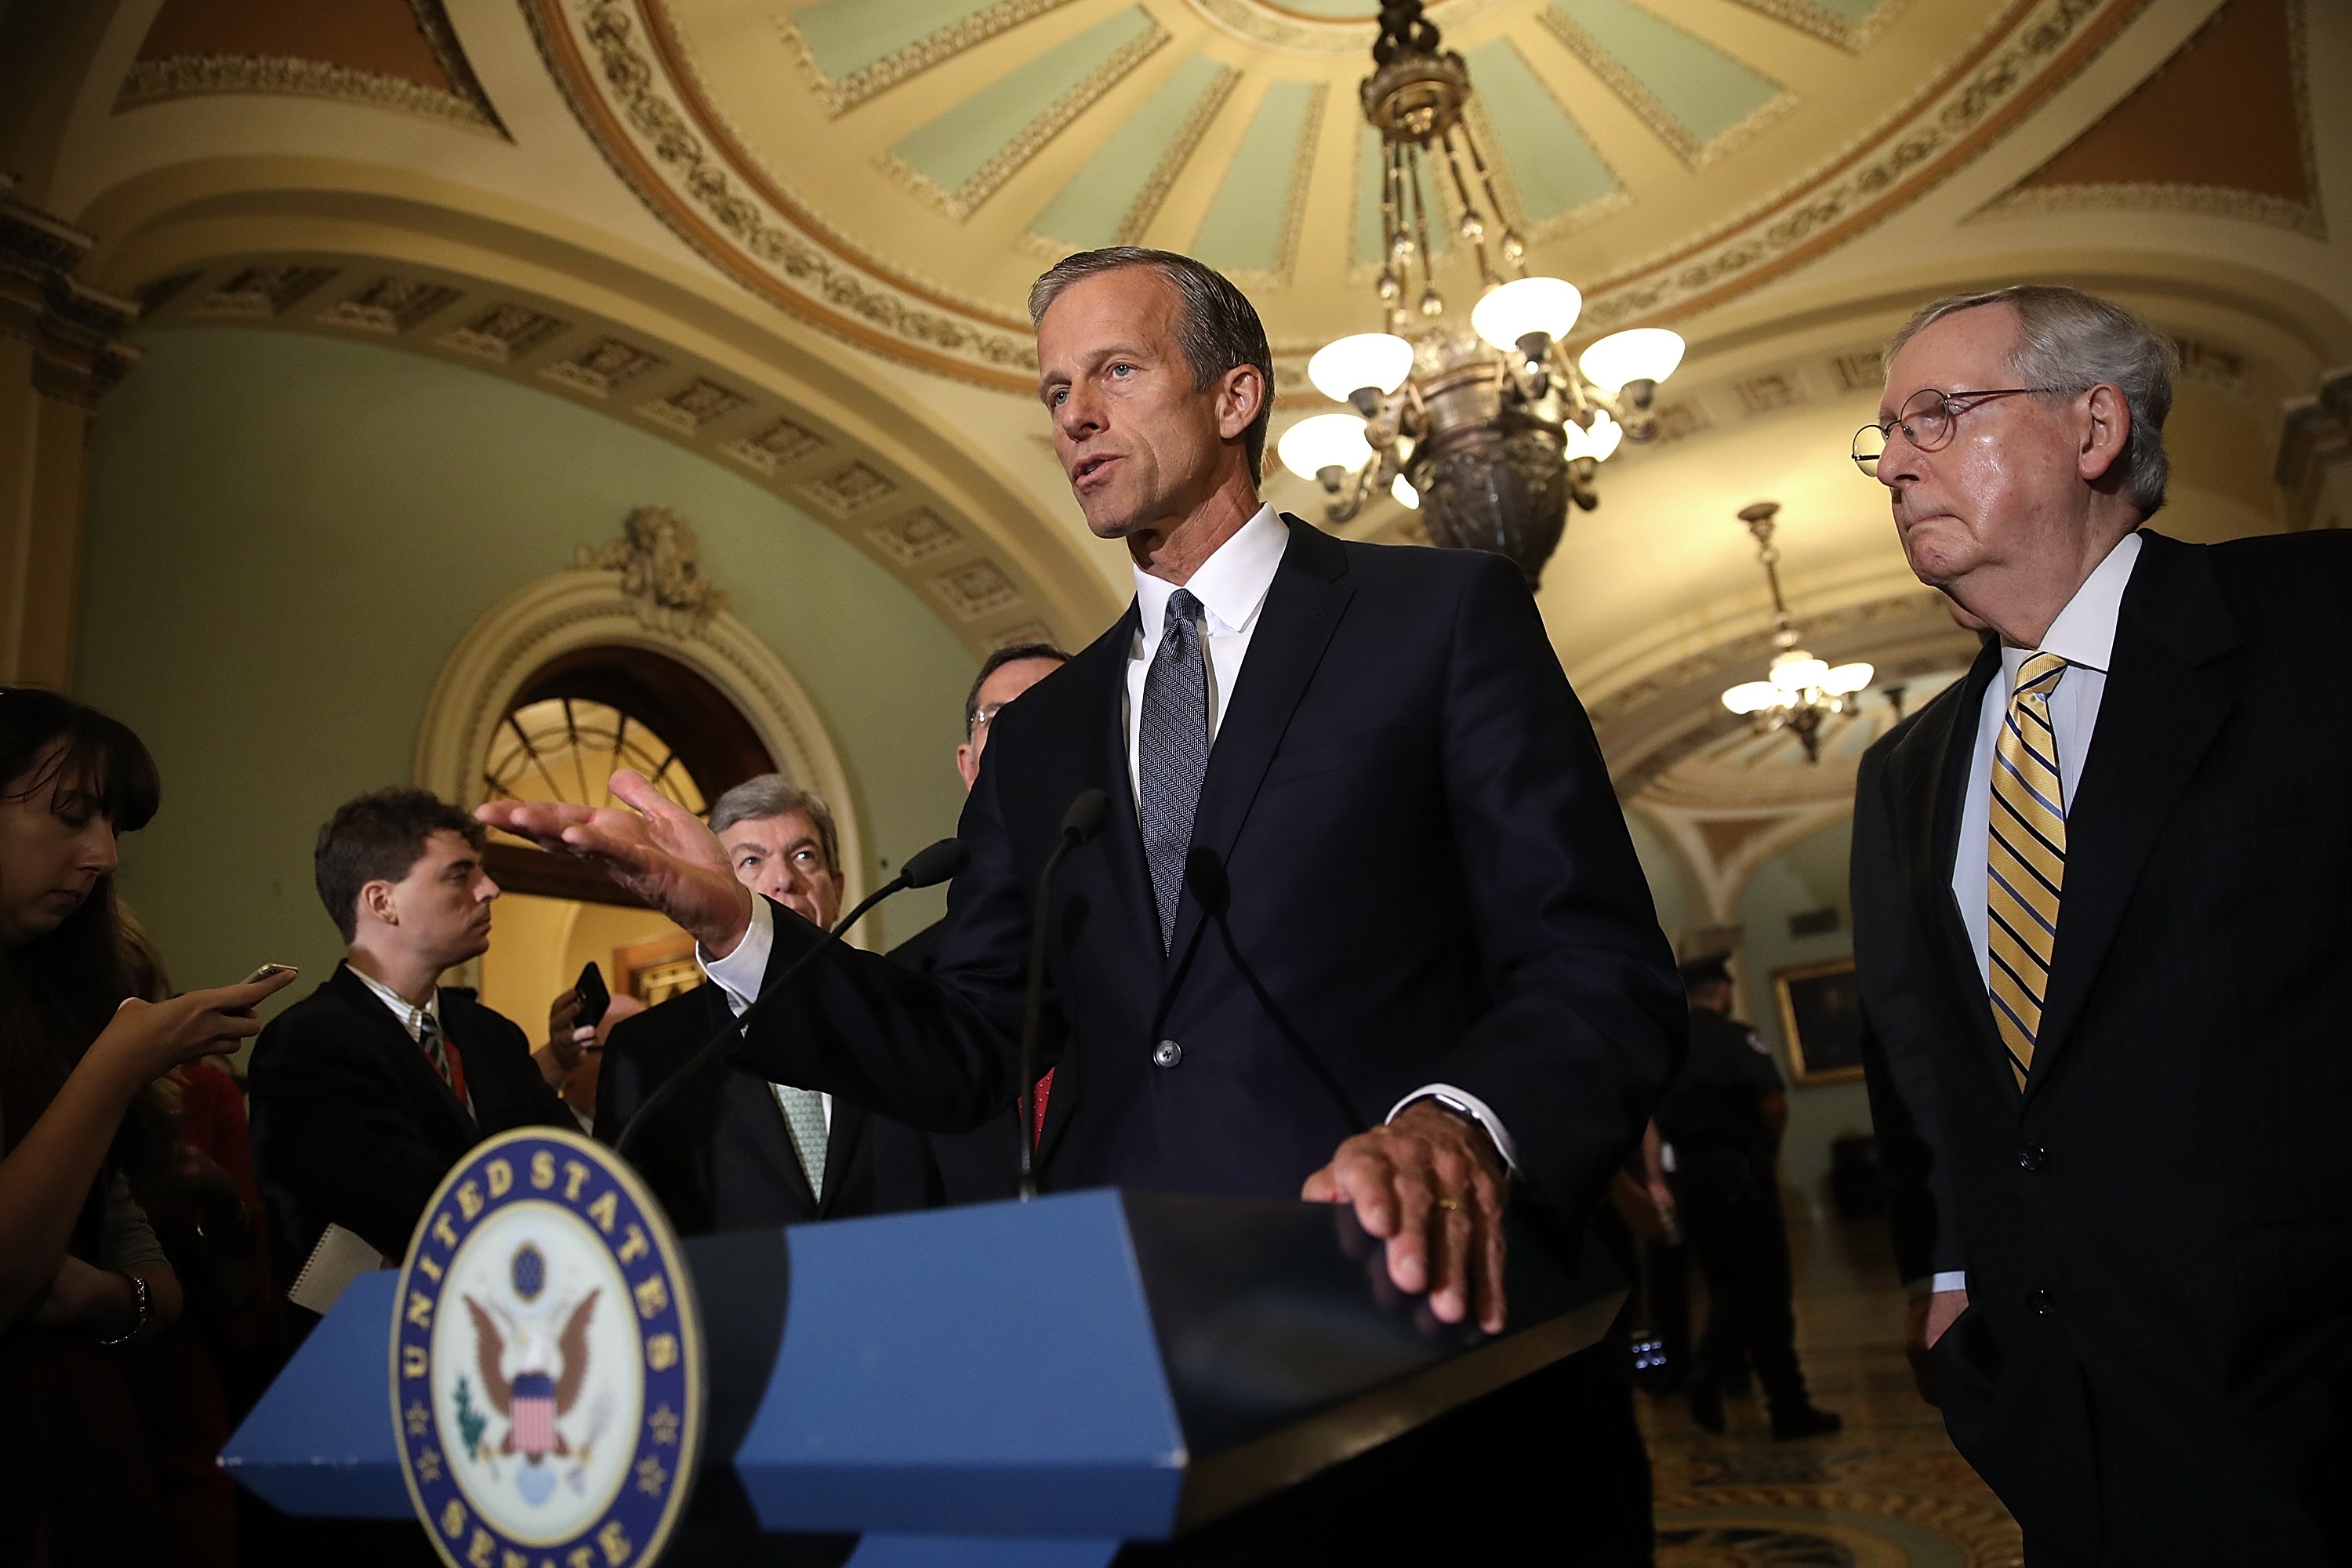 Sen. John Thune speaks with members of the Senate Republican leadership during a press conference at the U.S. Capitol on Sept. 12, 2017 in Washington, DC. During the press conference, Senate Majority Leader Mitch McConnell answered a range of questions relating to the upcoming Senate agenda.